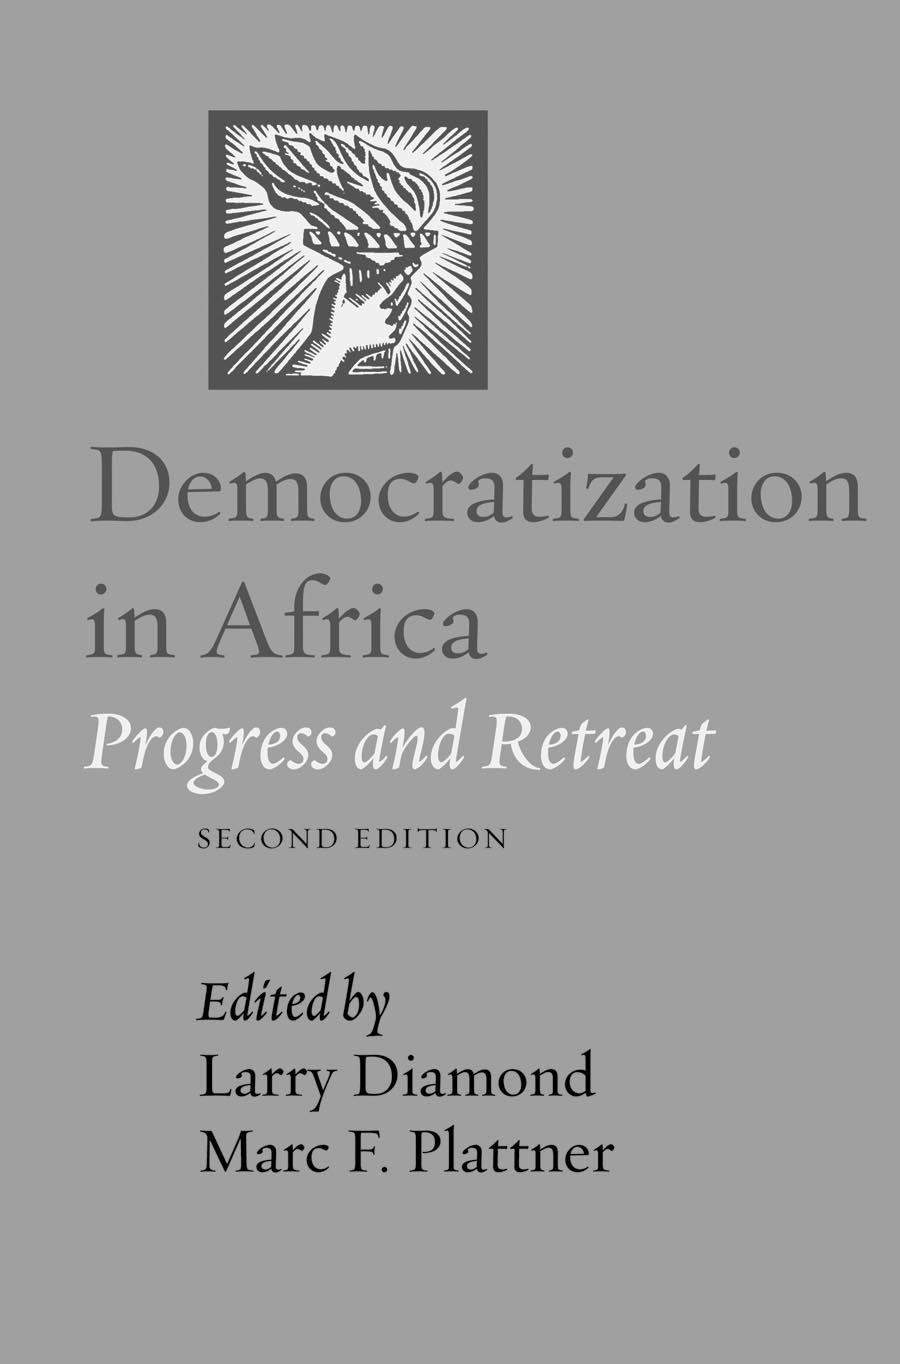 купить Democratization in Africa – Progress and Retreat 2e недорого